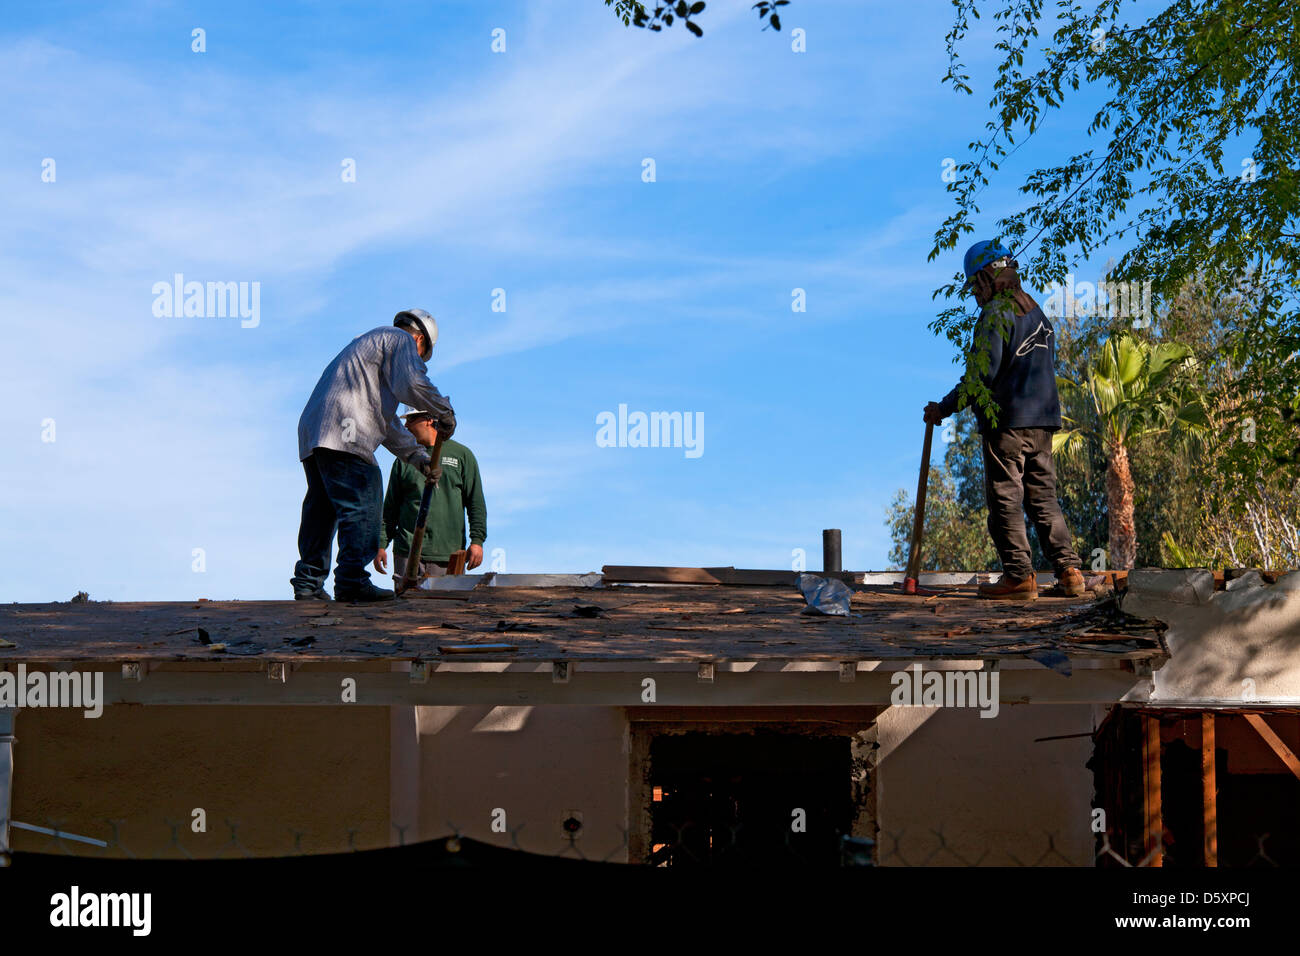 Demolition of roof on single family home. Los Angeles, California, USA - Stock Image